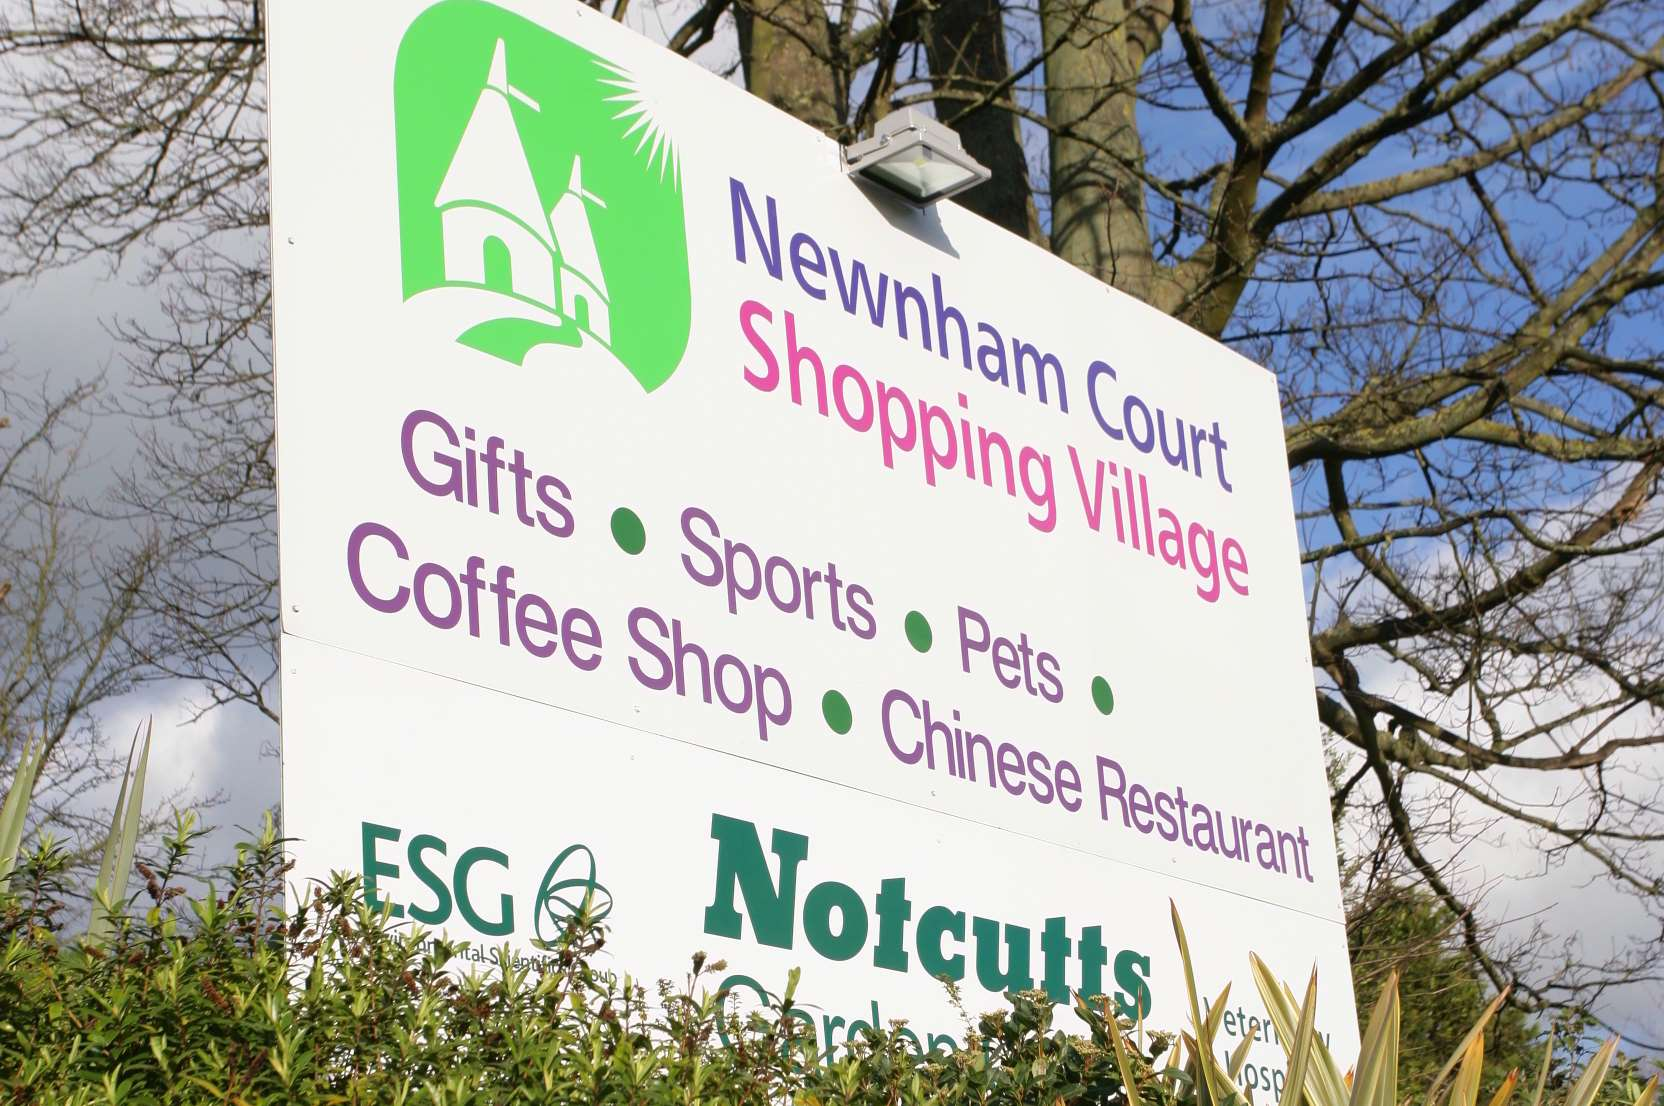 Councillors say no to Notcutts redevelopment